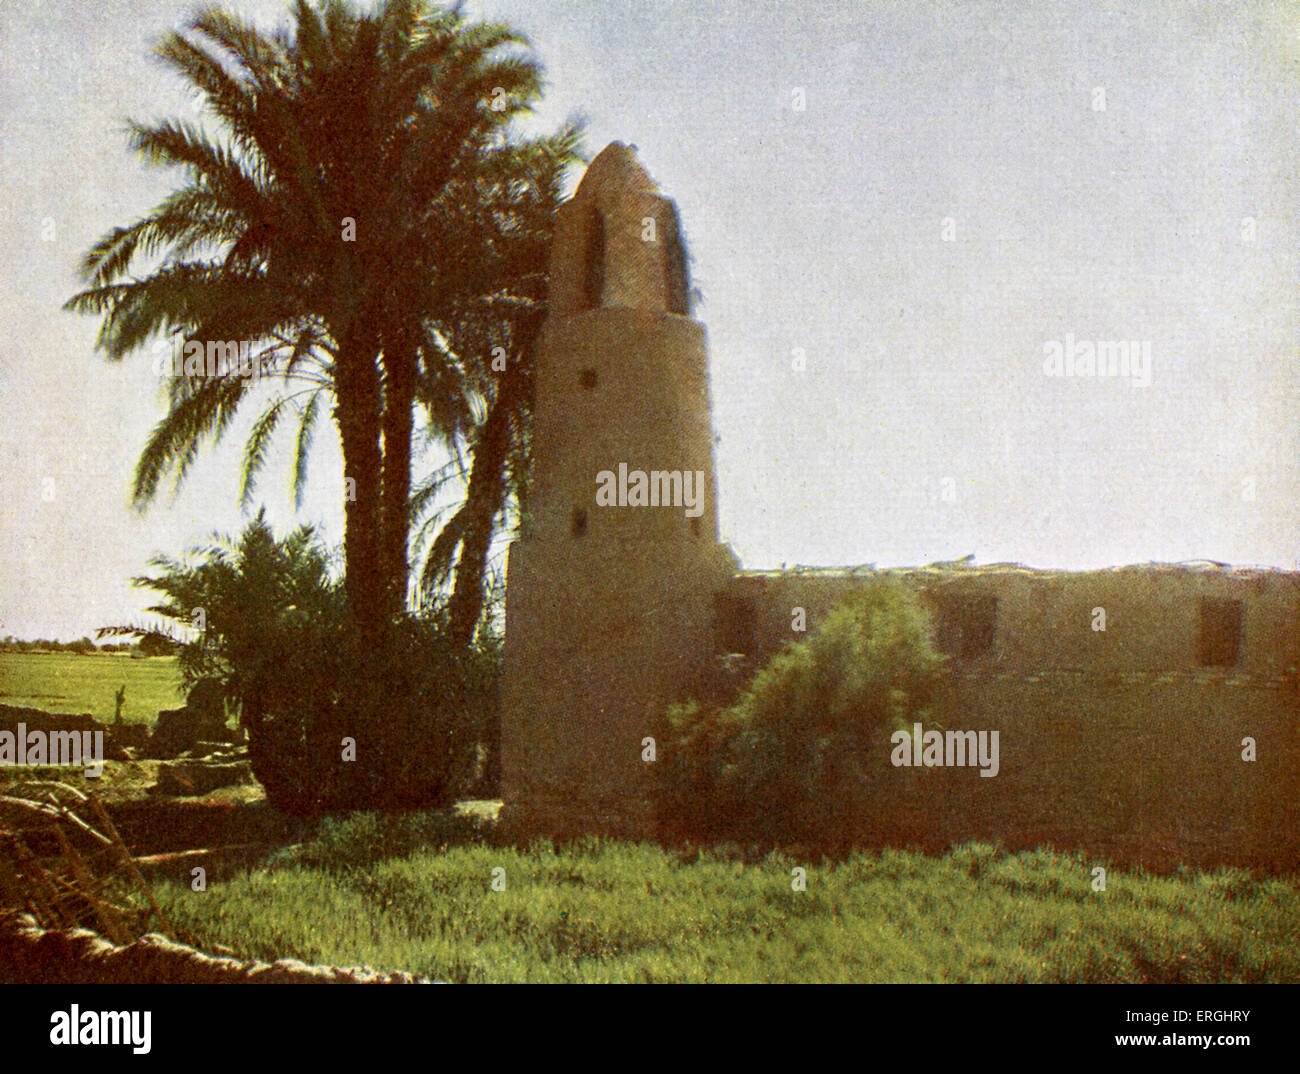 Mosque at Medamut (suburb of Thebes), Egypt. Photograph from 1923 book. - Stock Image